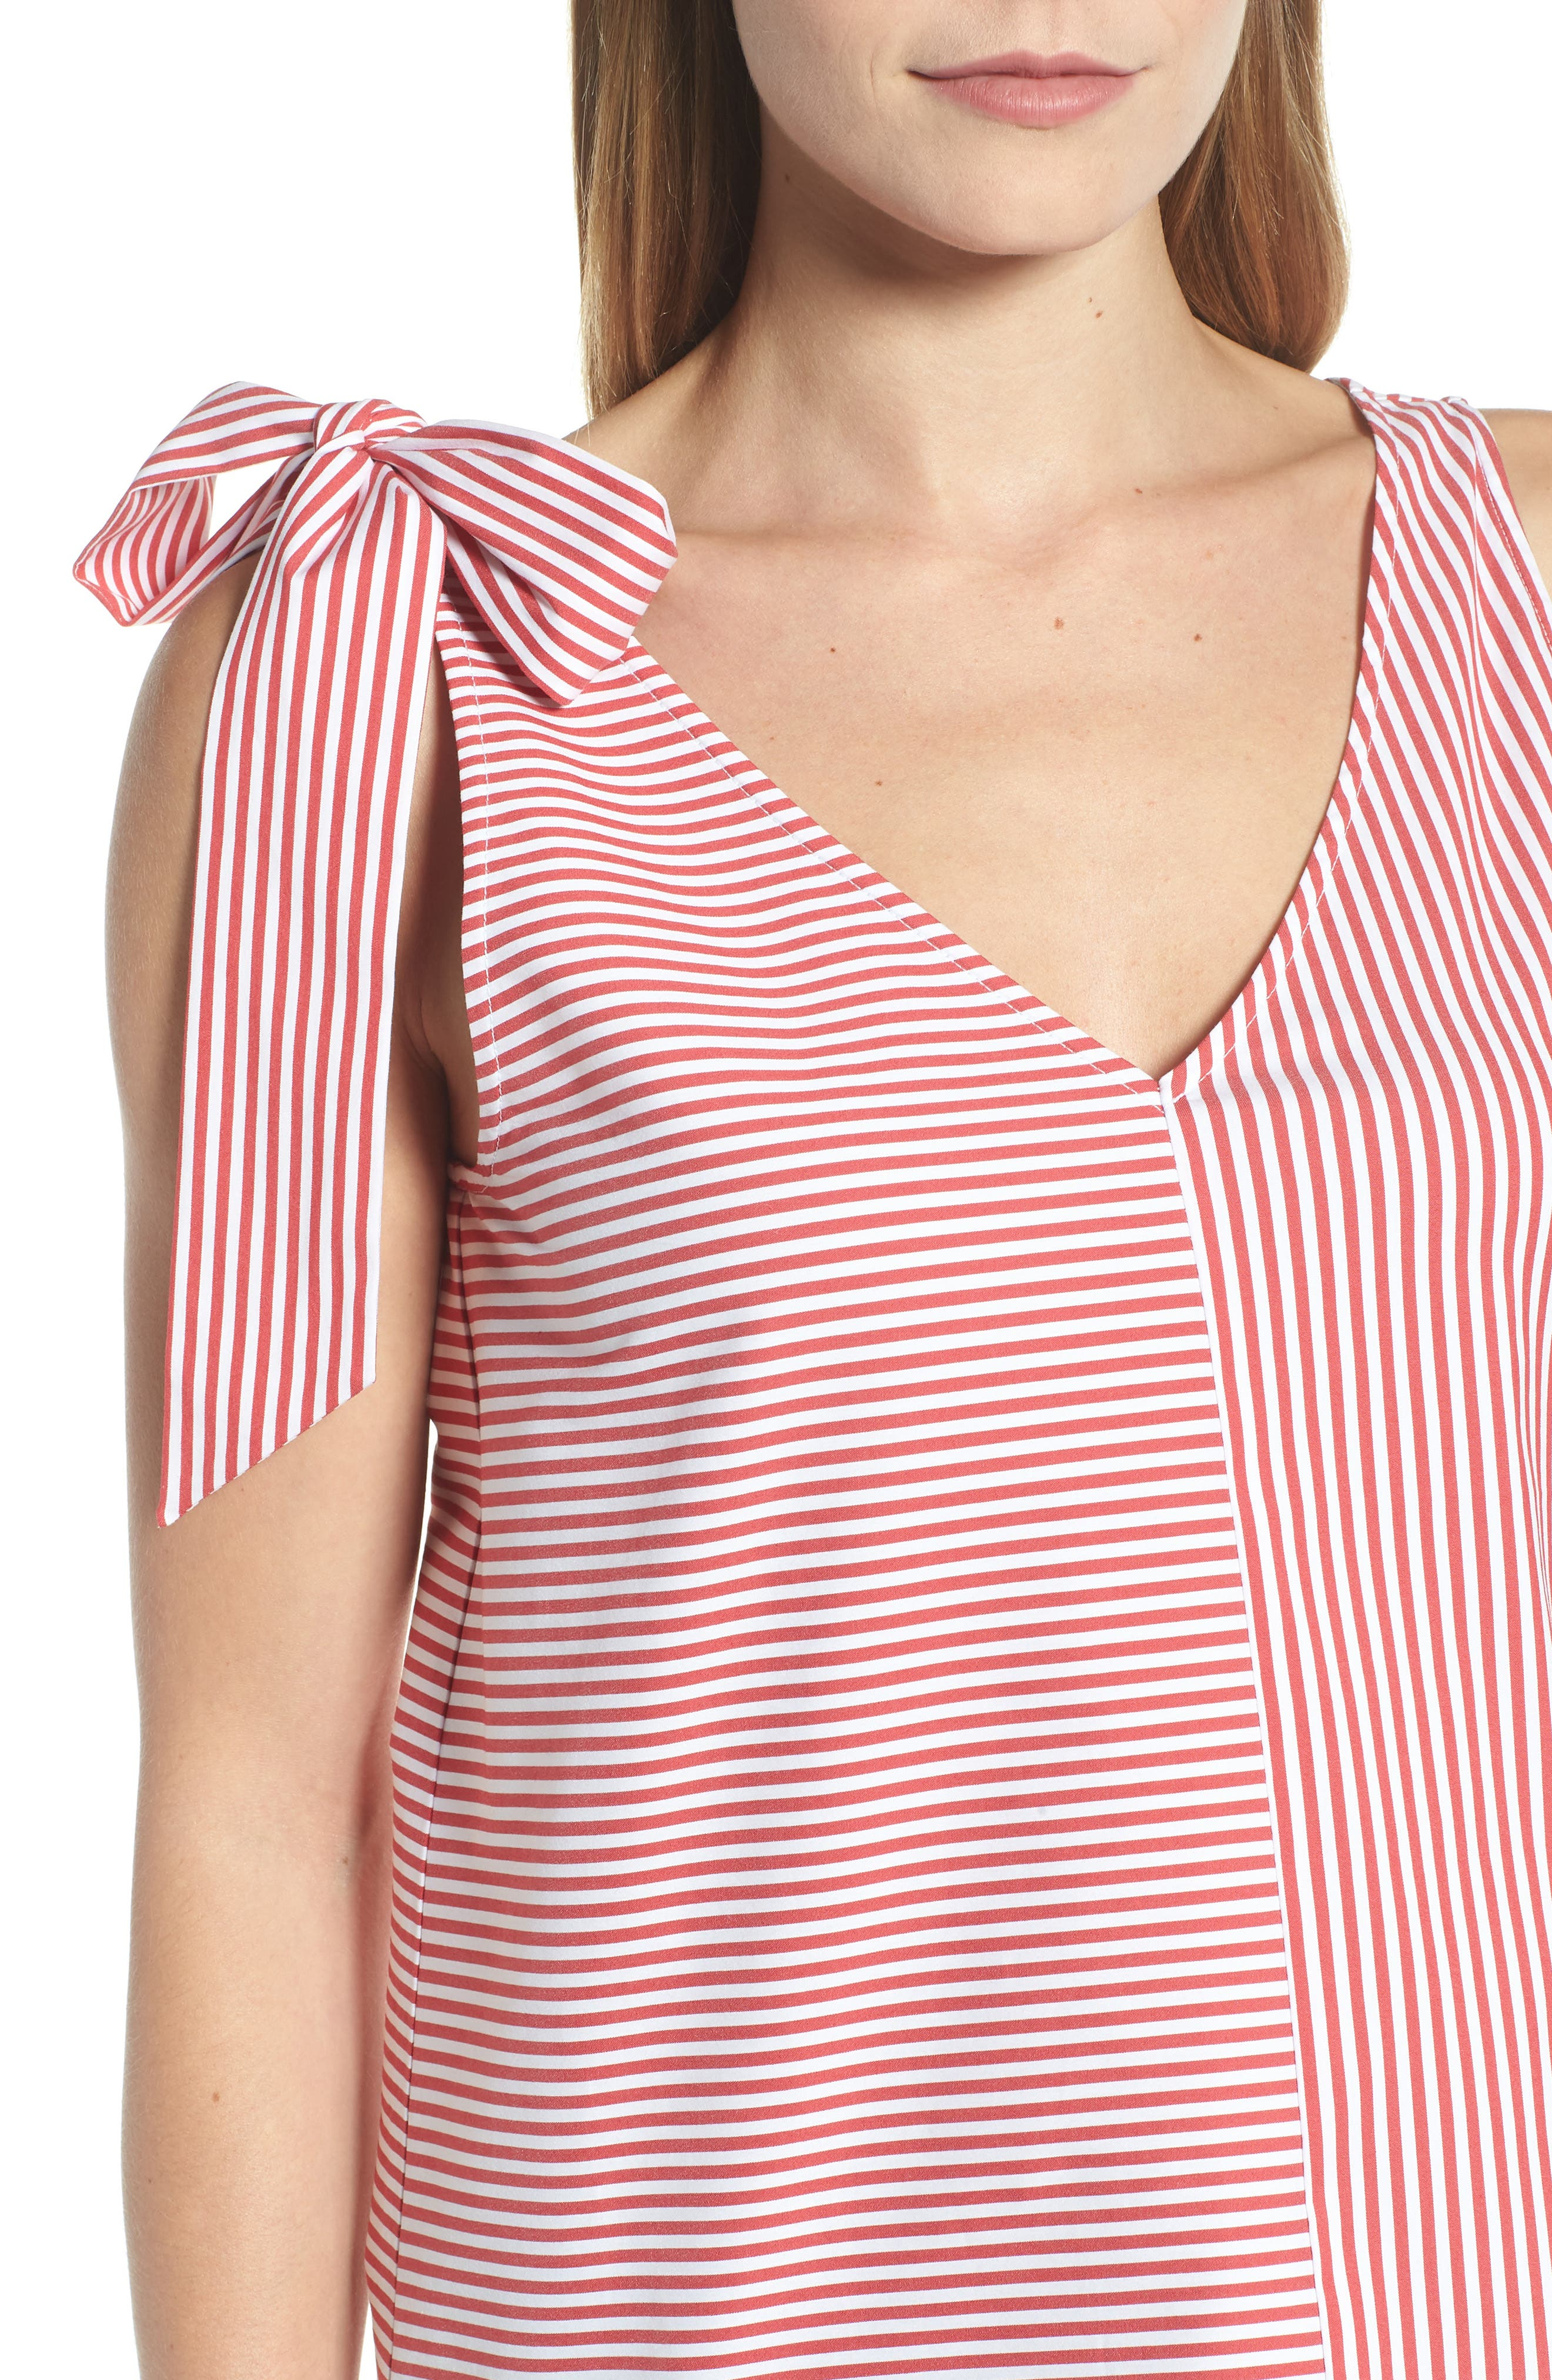 Sleeveless Striped Bow Top,                             Alternate thumbnail 4, color,                             621